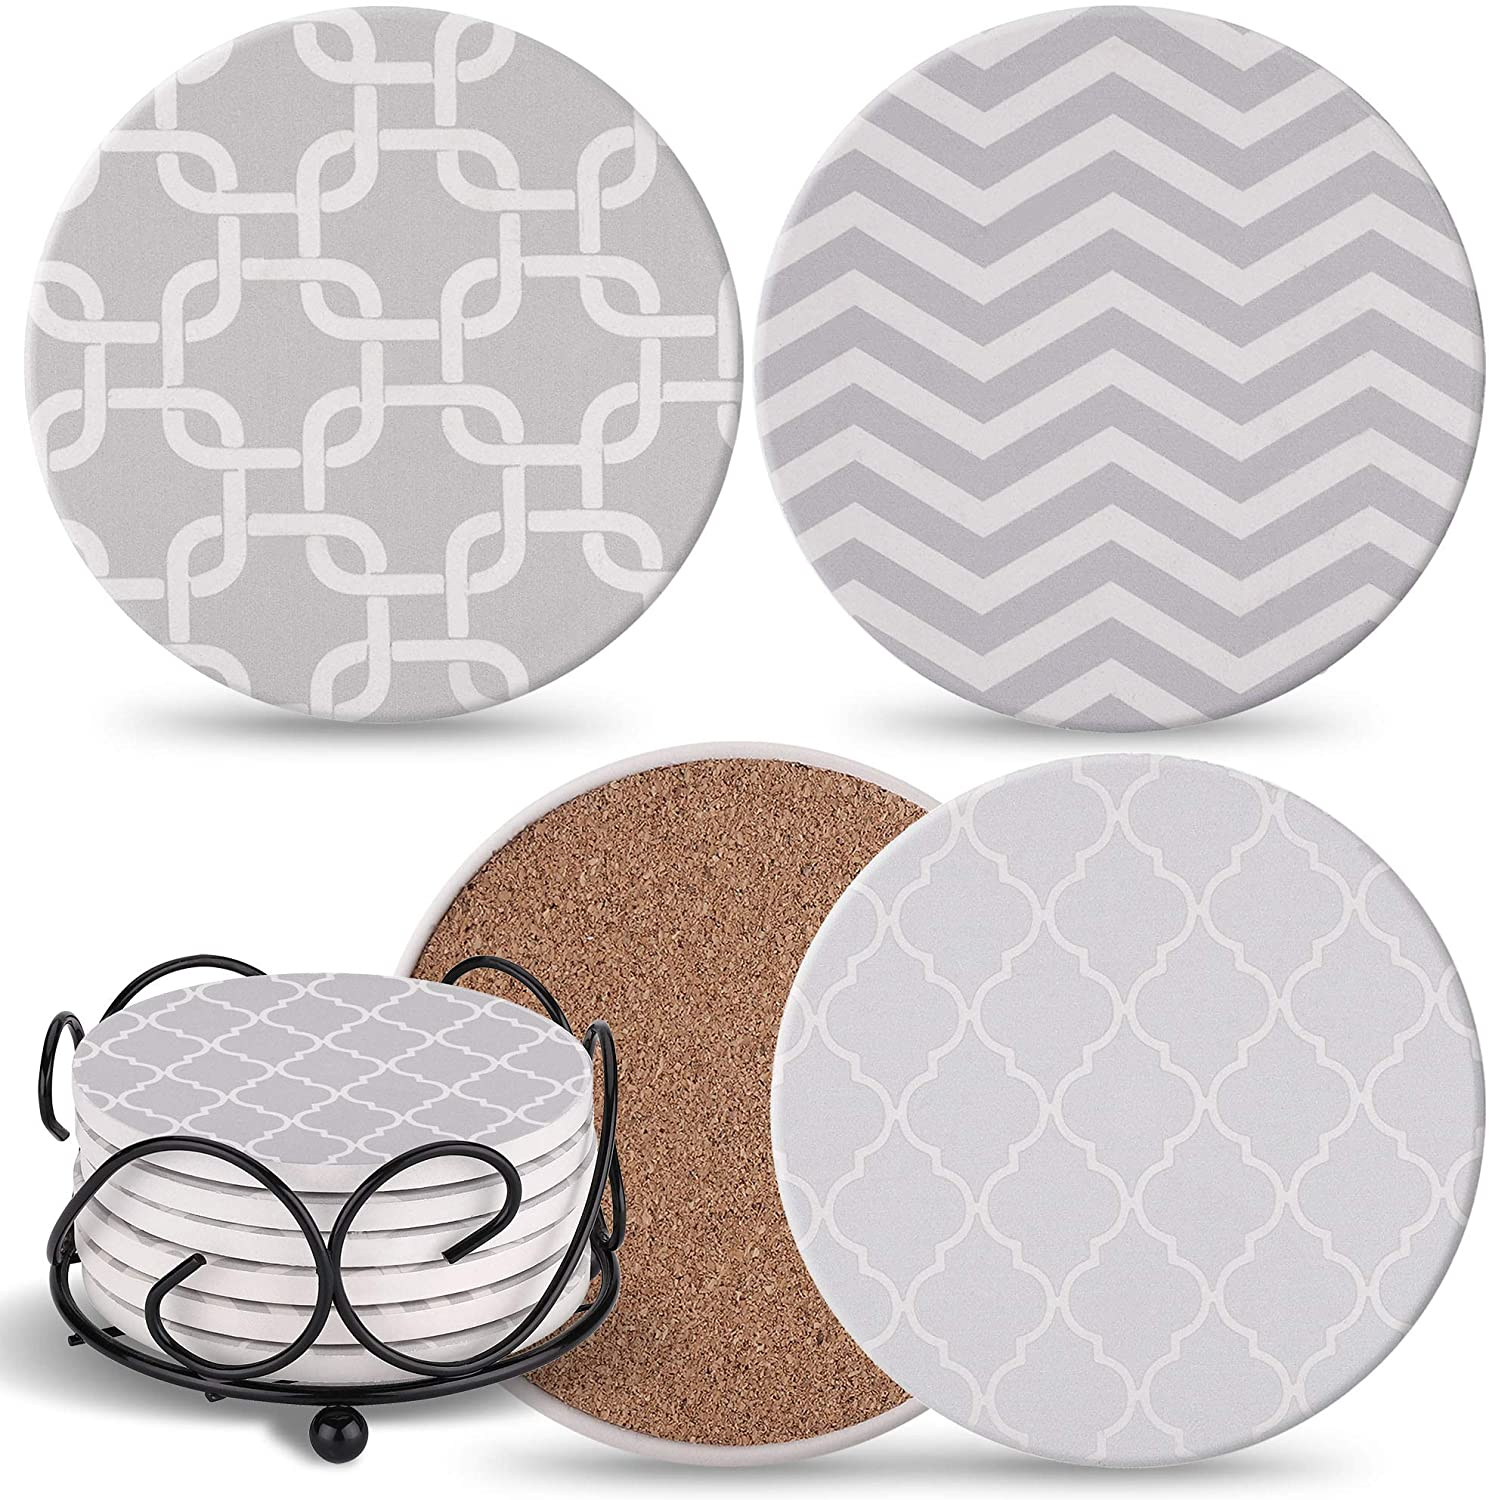 Increase Your Business Visibility By Using Personalized Coasters!!